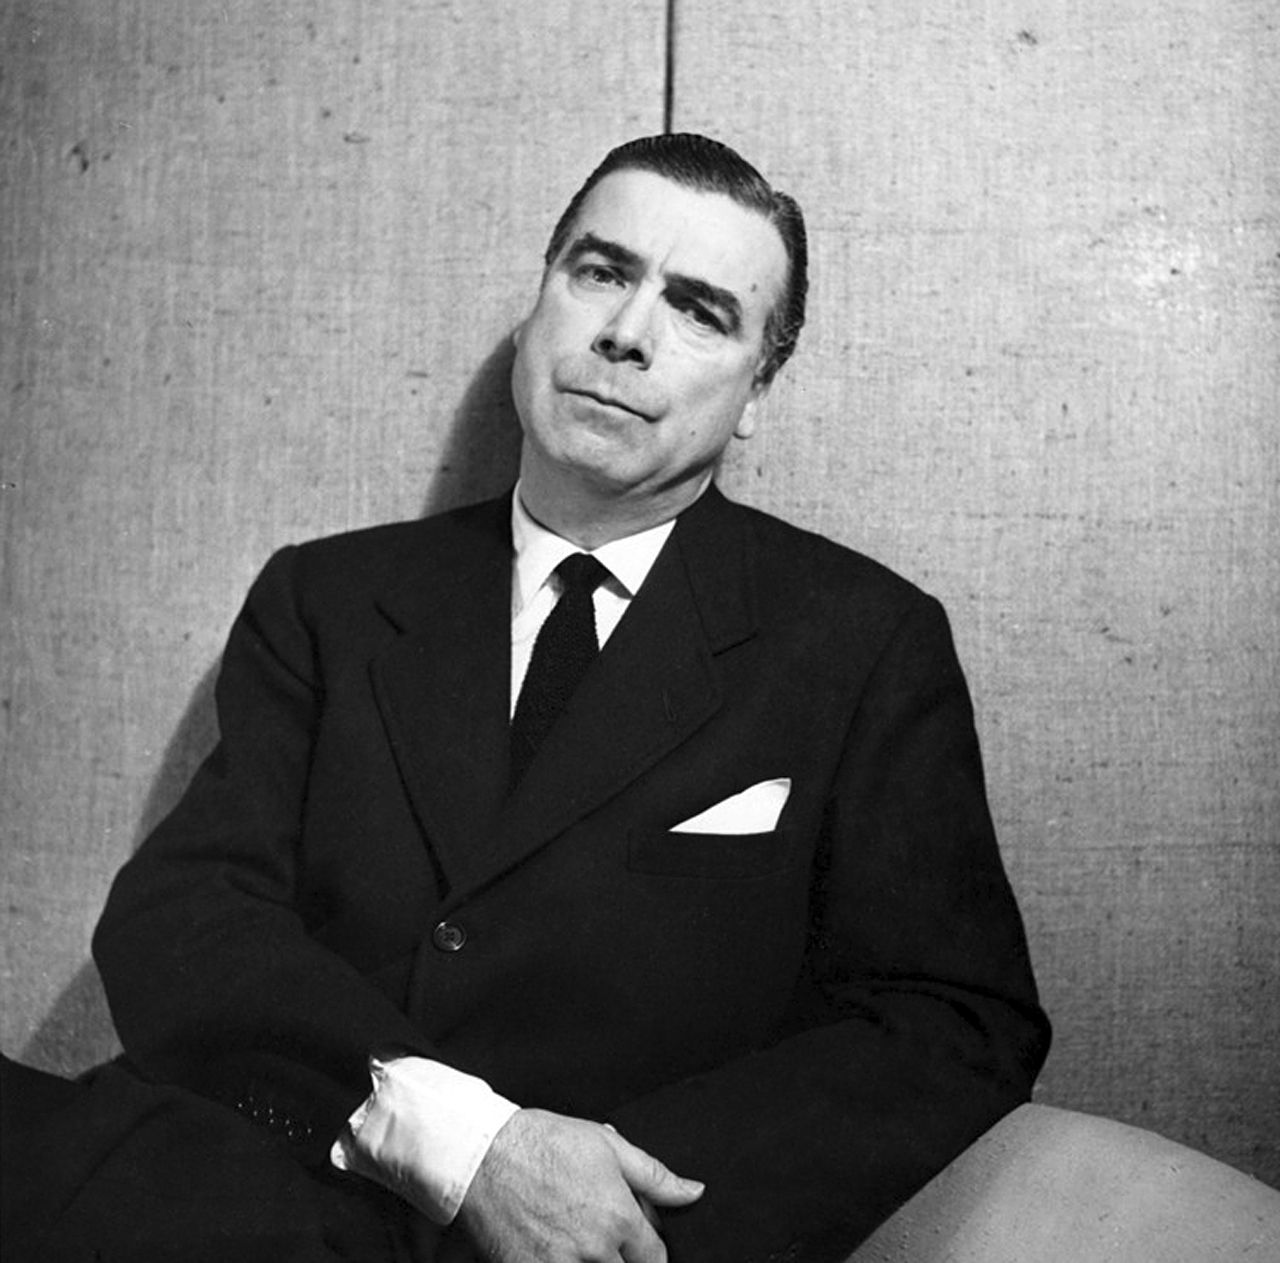 Cristobal Balenciaga was a Spanish designer who was known for ...